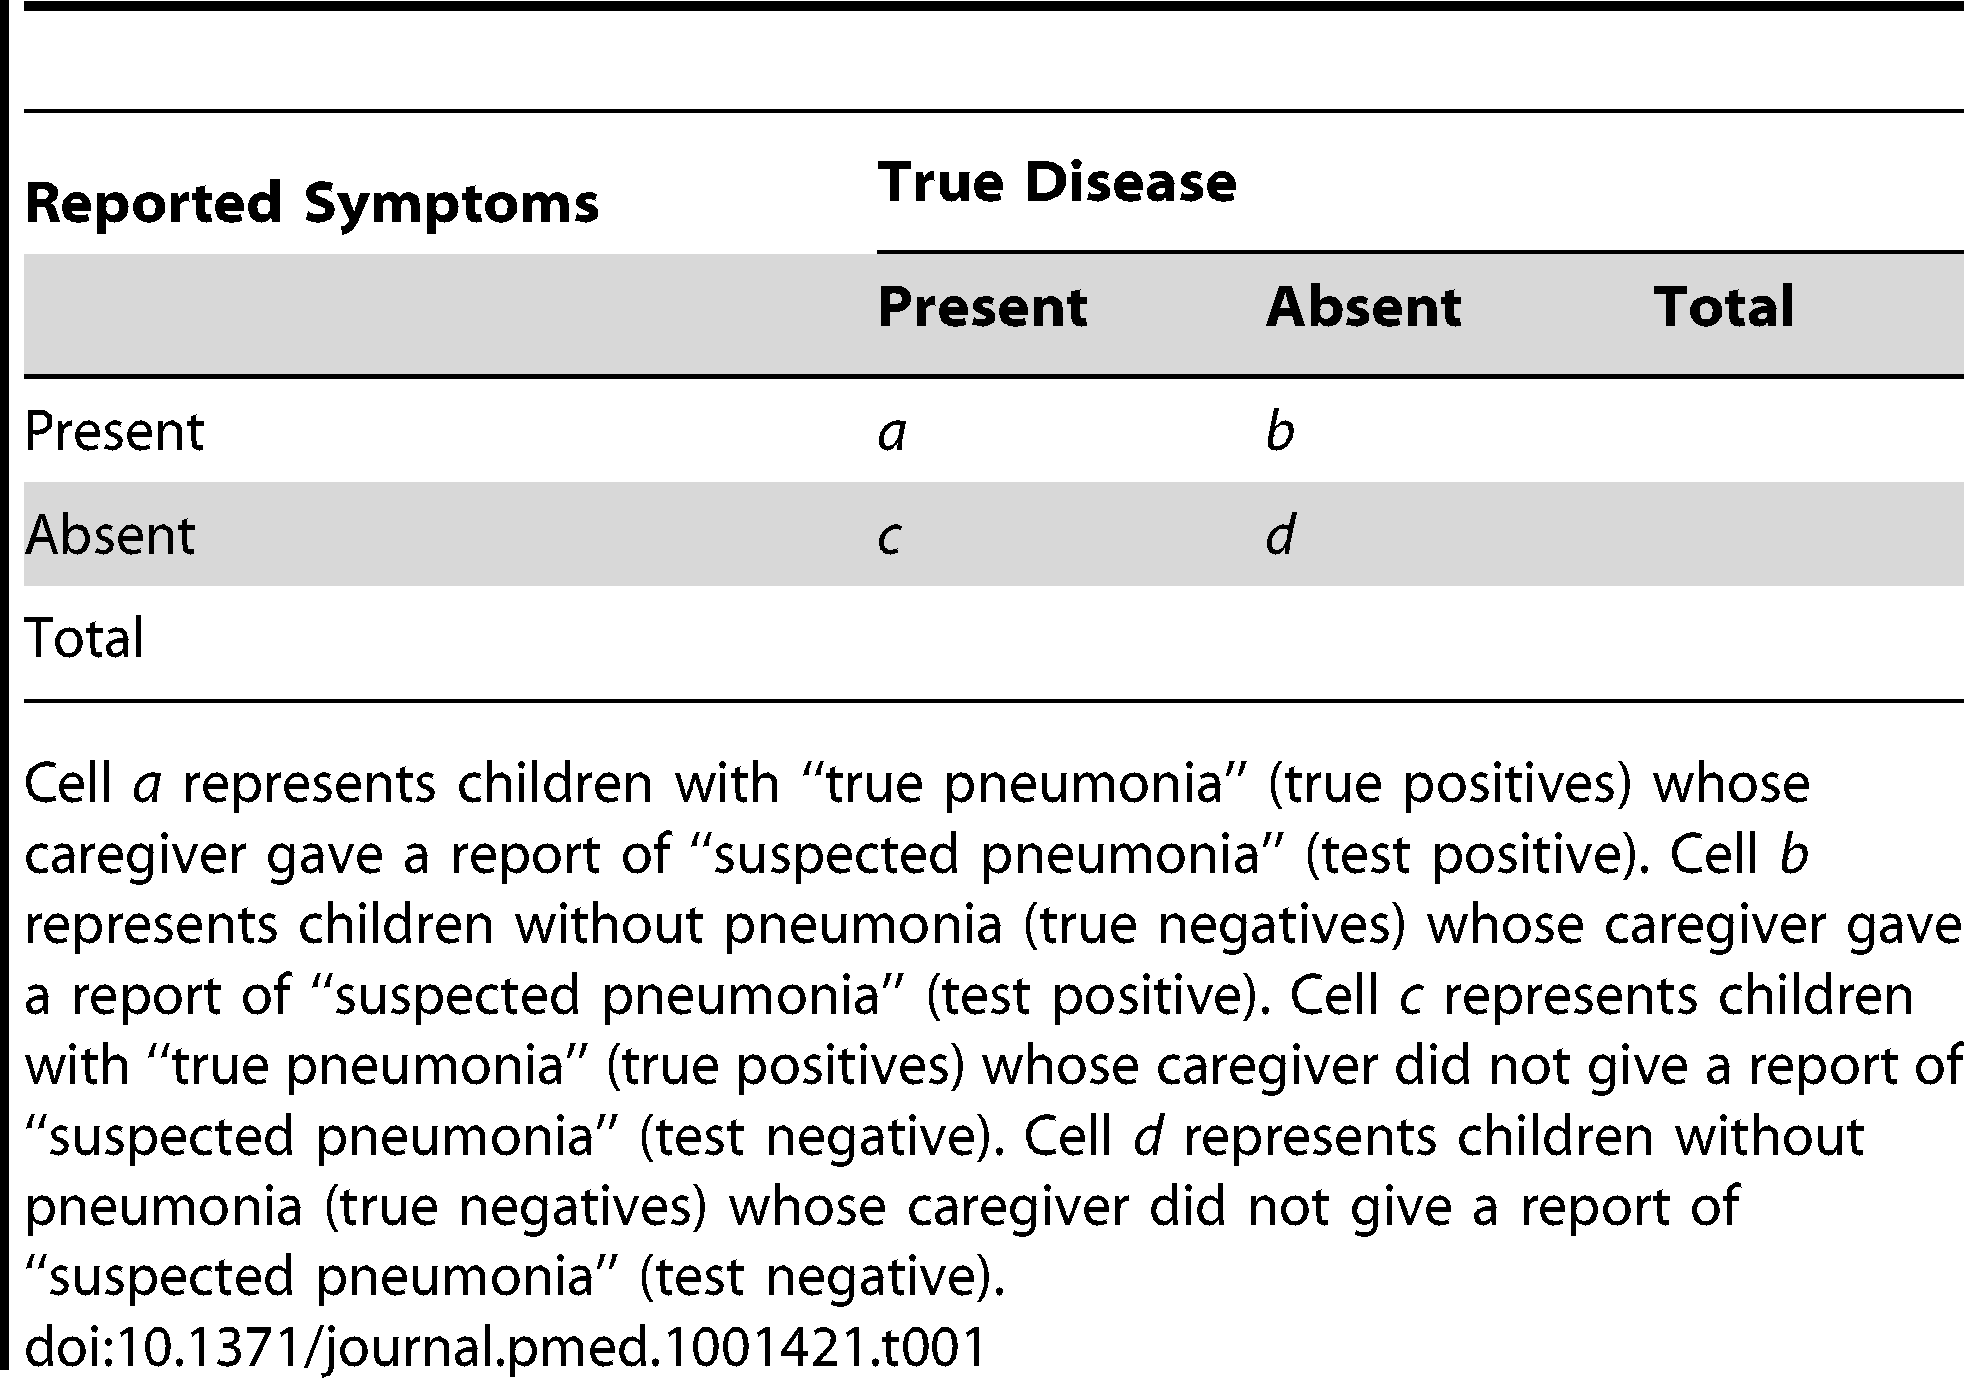 "Distribution of cases of ""true pneumonia"" (true disease) according to caregiver report of ""suspected pneumonia"" (reported symptoms) and true disease status."